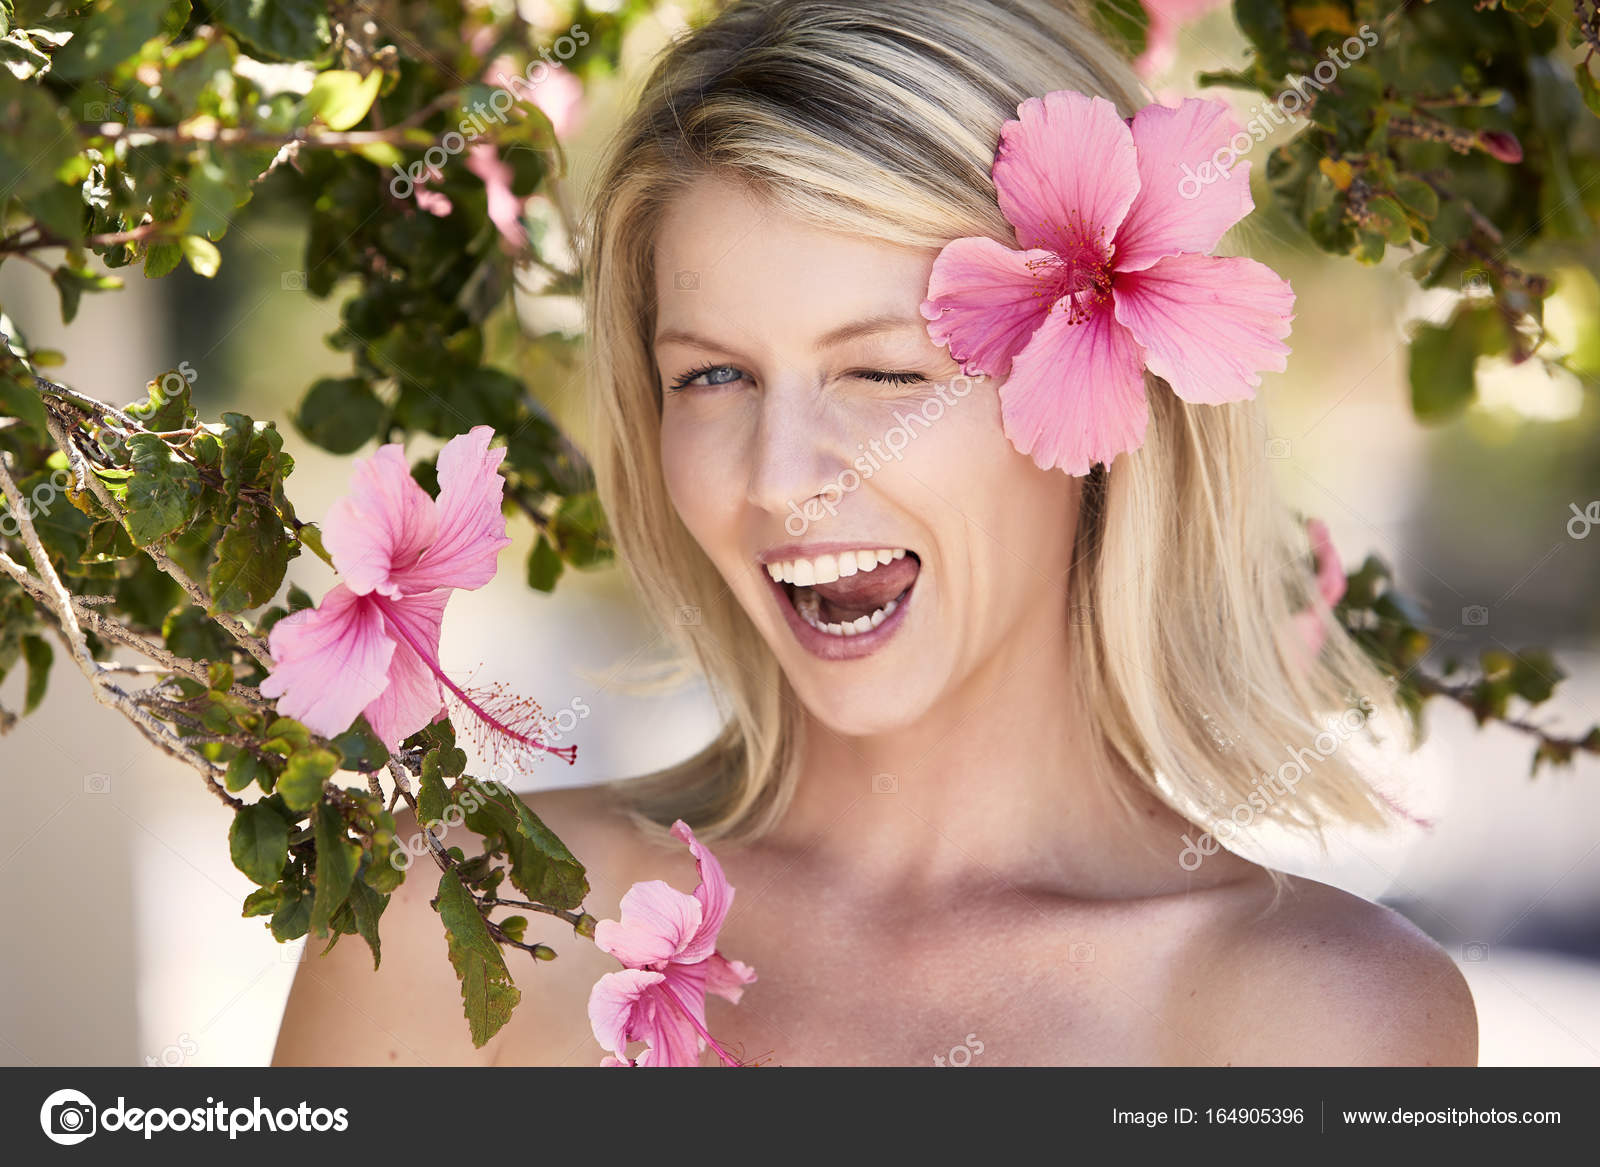 Beautiful woman with flower in hair stock photo sanneberg 164905396 beautiful woman with flower in hair winking at camera photo by sanneberg izmirmasajfo